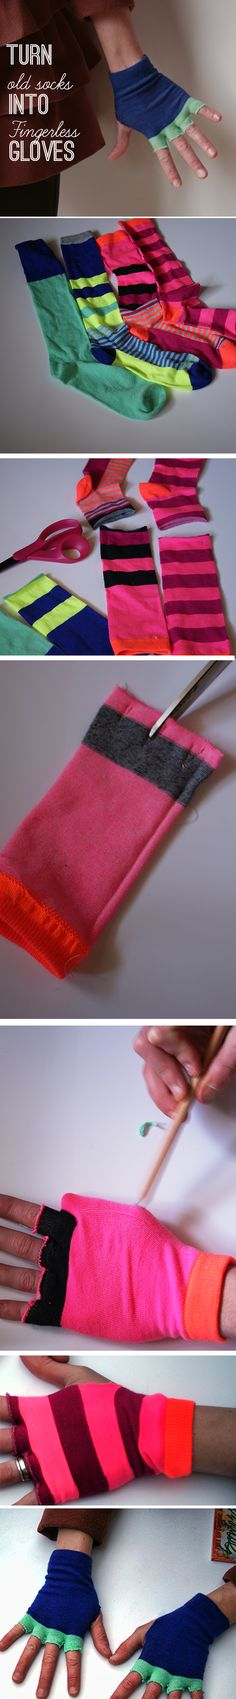 Upcycle old socks to fingerless gloves in this EASY diy @savedbyloves